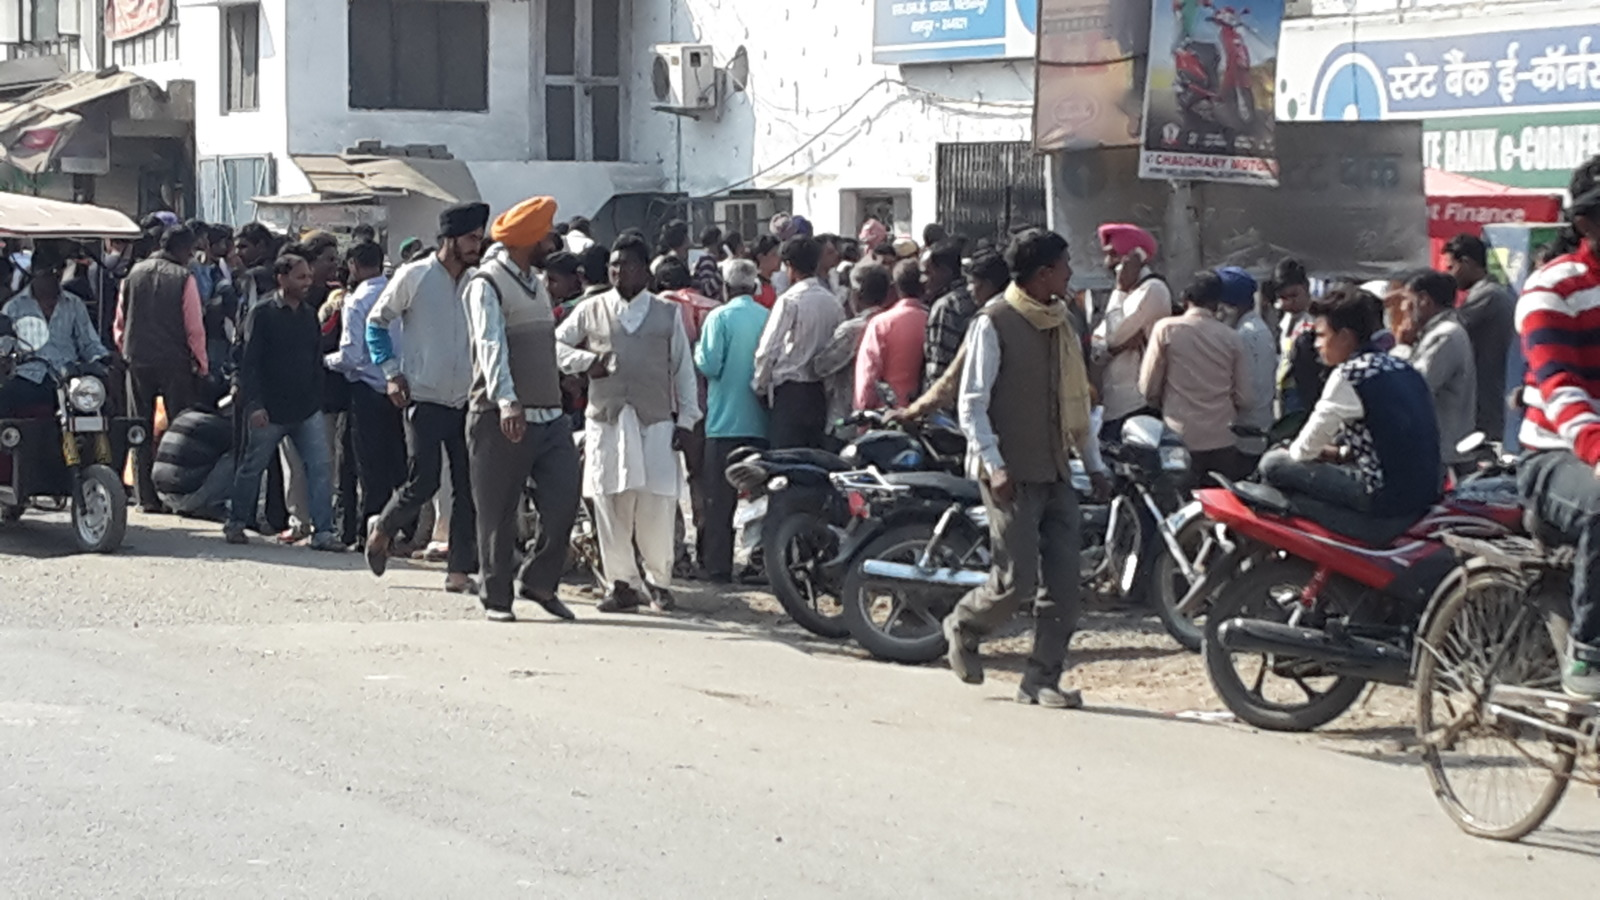 Queues of people outside the banks in India